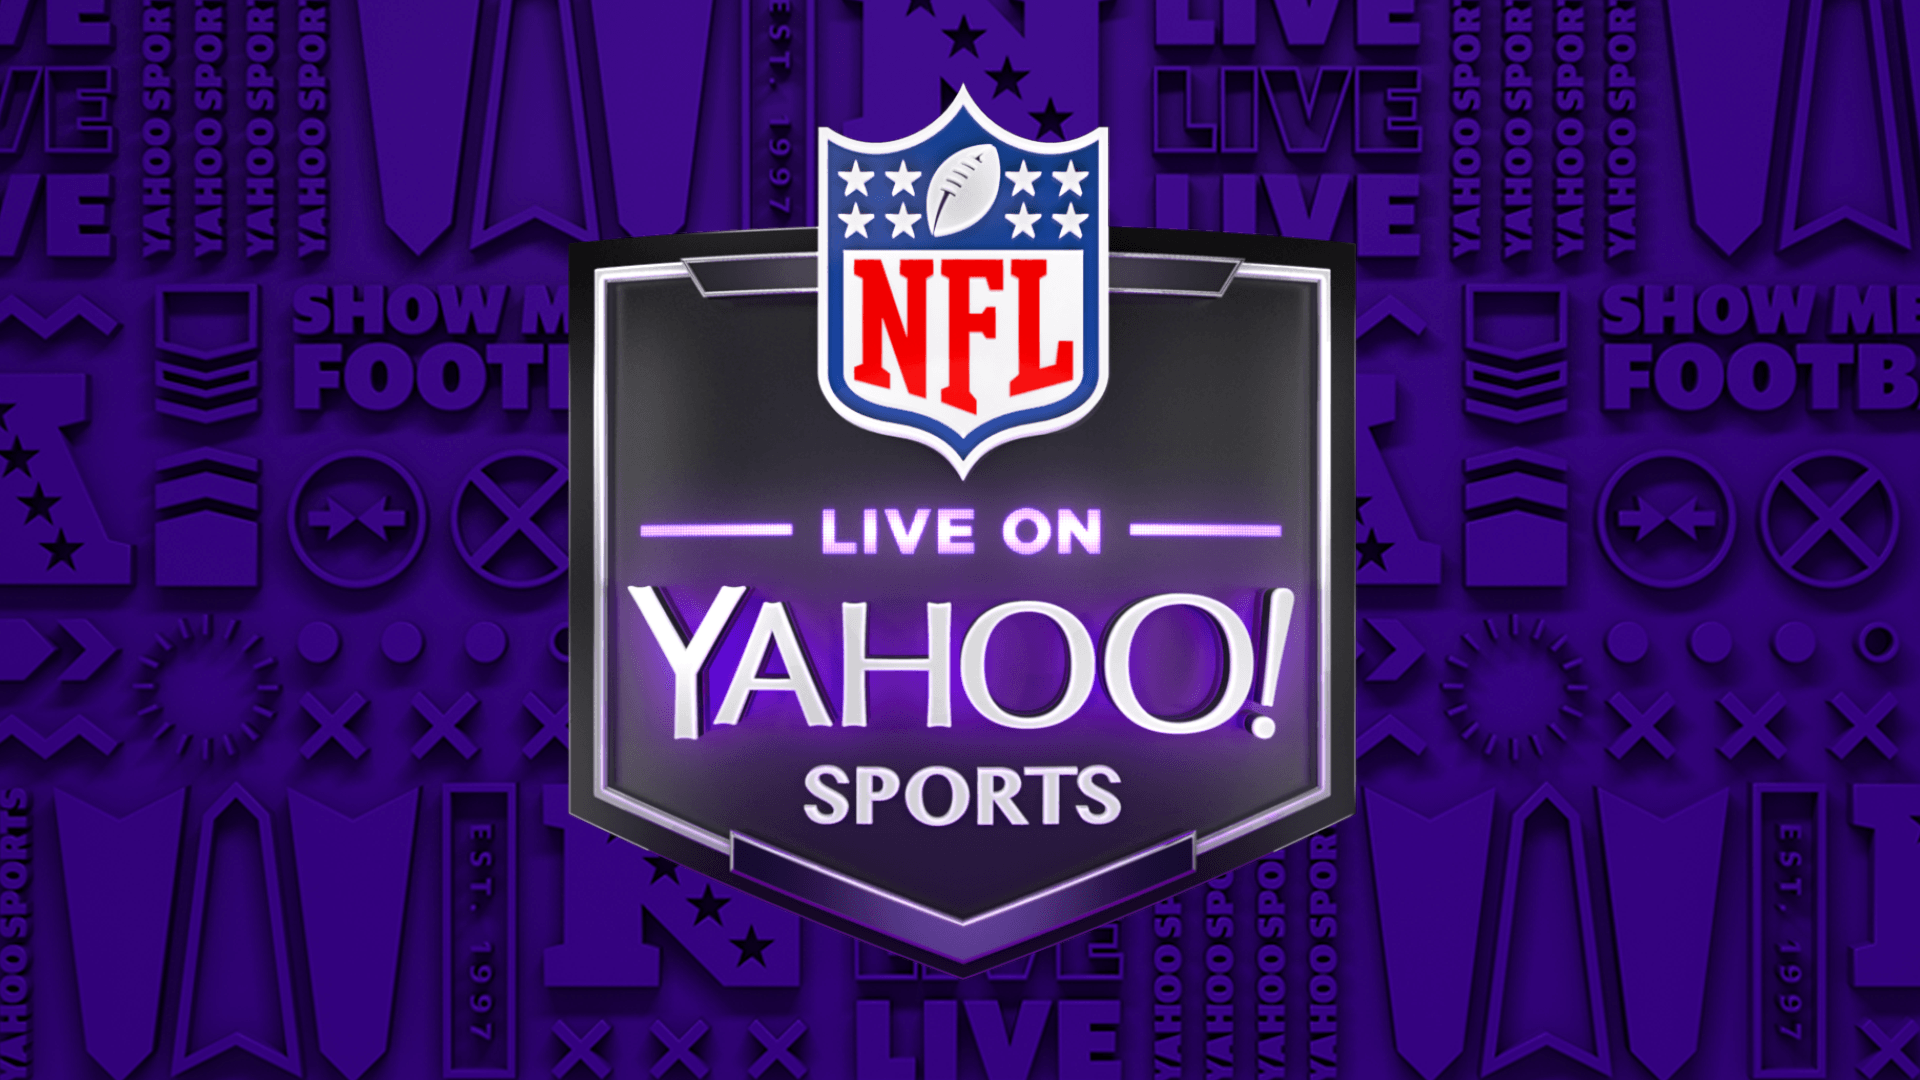 nfl live on yahoo sports video